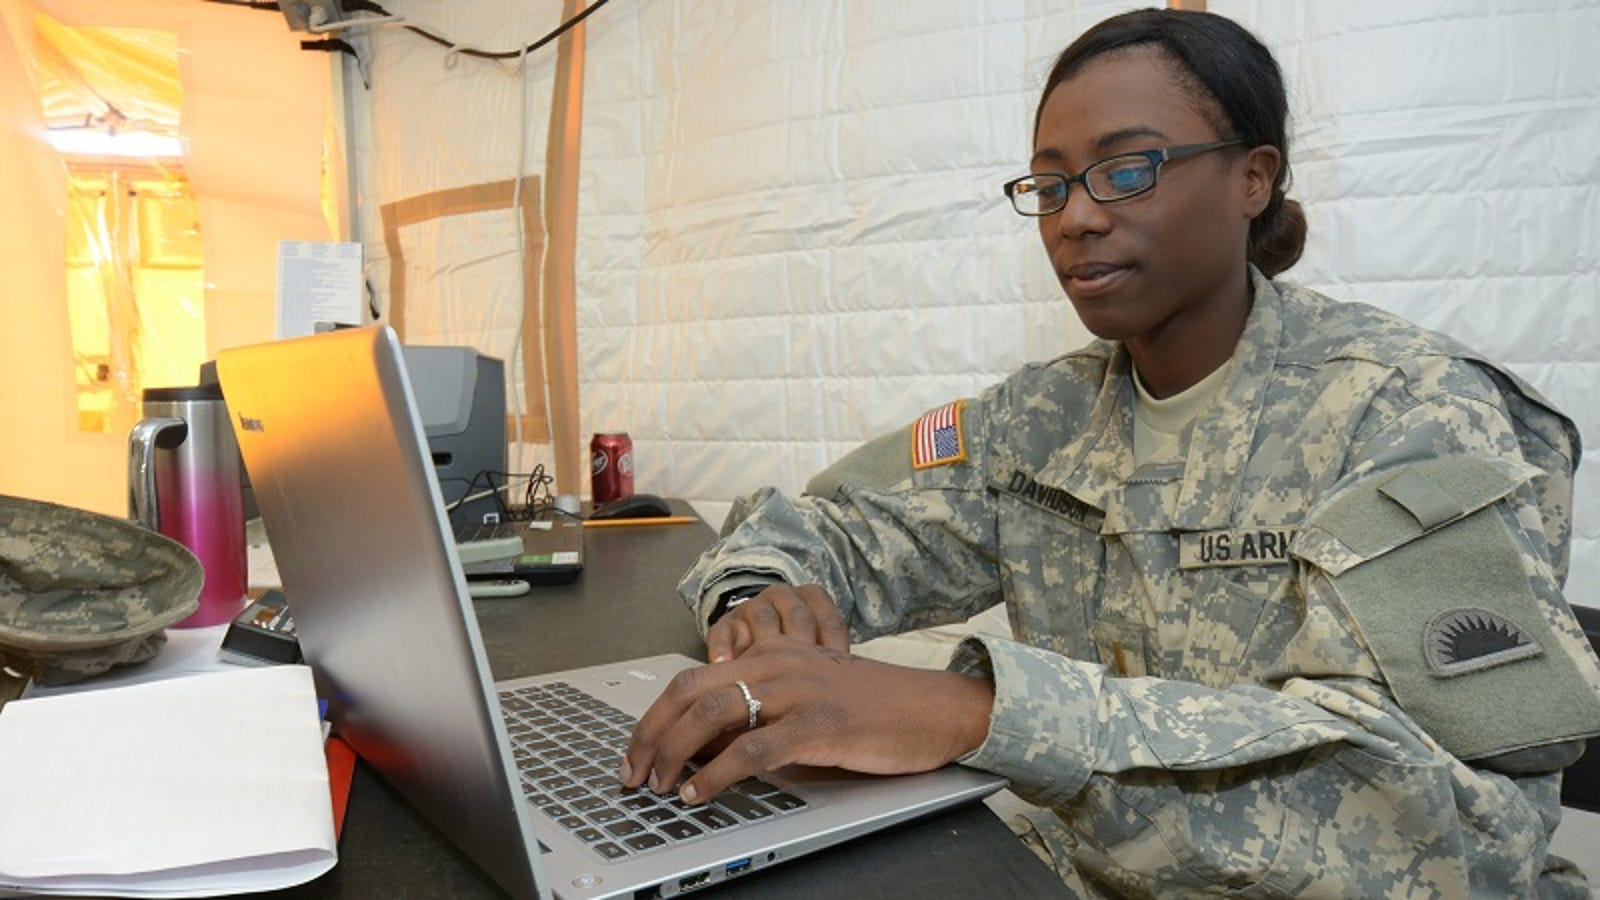 write email with maximum efficiency using this military system